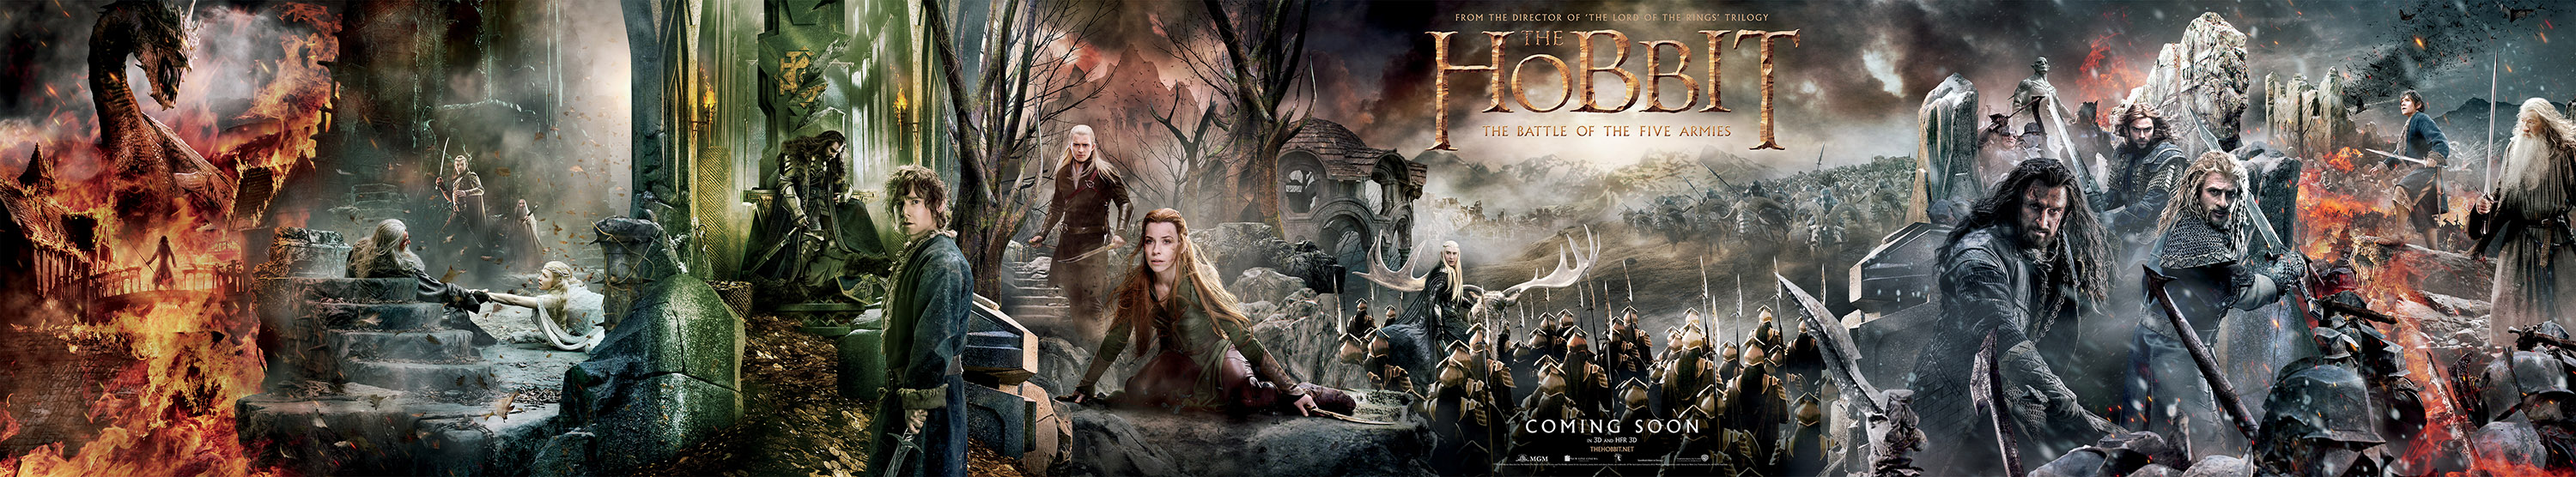 The-Hobbit-Battle-of-Five-Armies-tapestry_resized